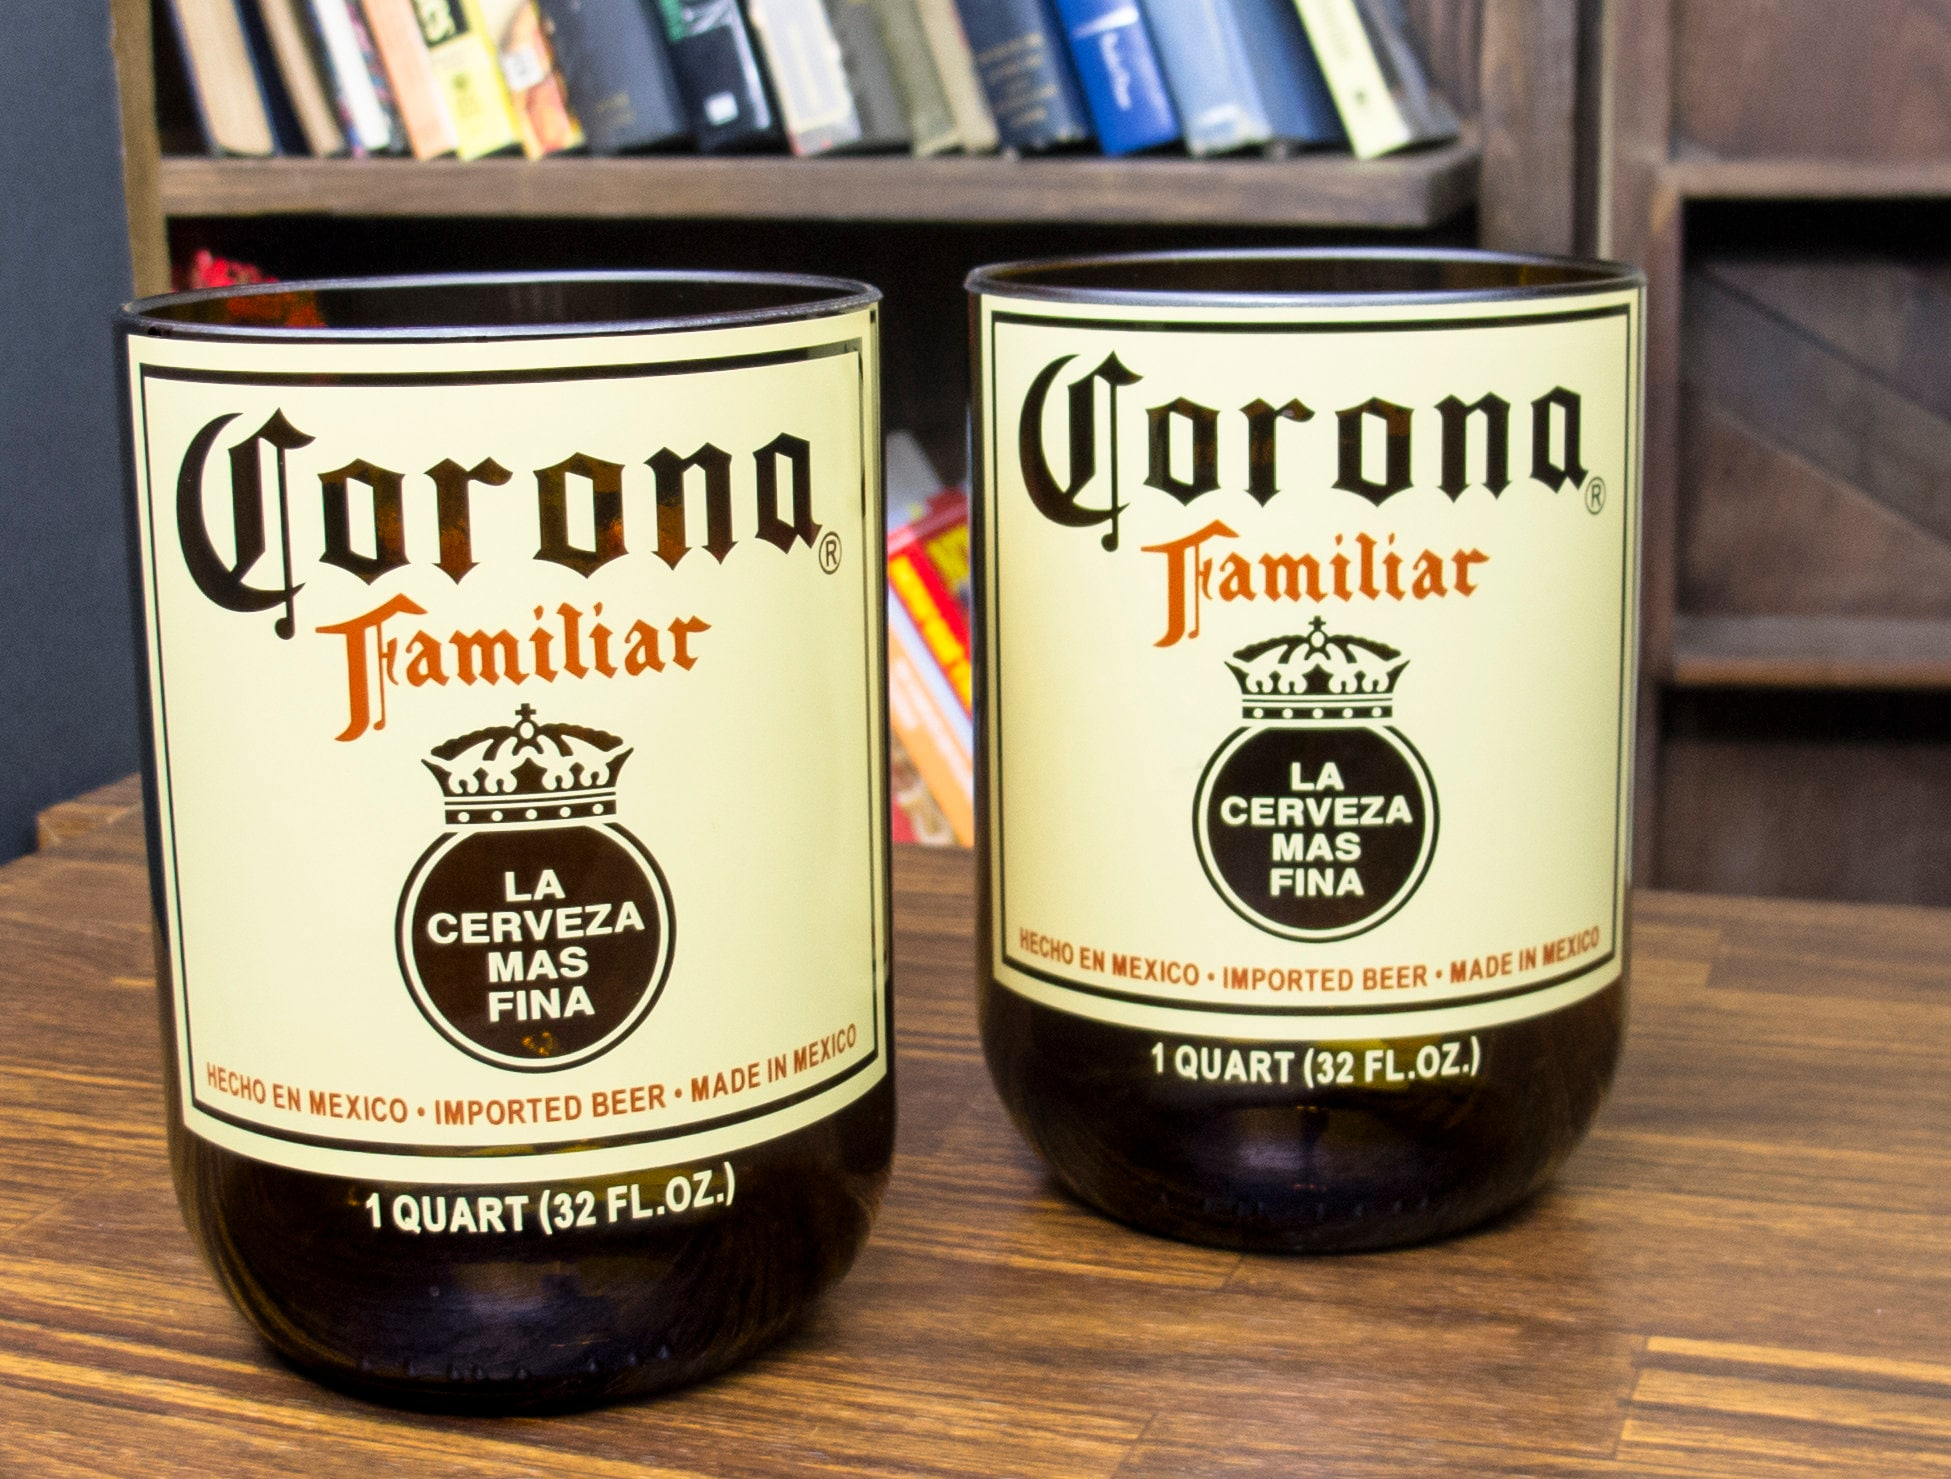 beer glasses corona familiar gift idea beer gifts for dad beer christmas gifts beer gift for husband beer lover gift beer xmas gift idea for